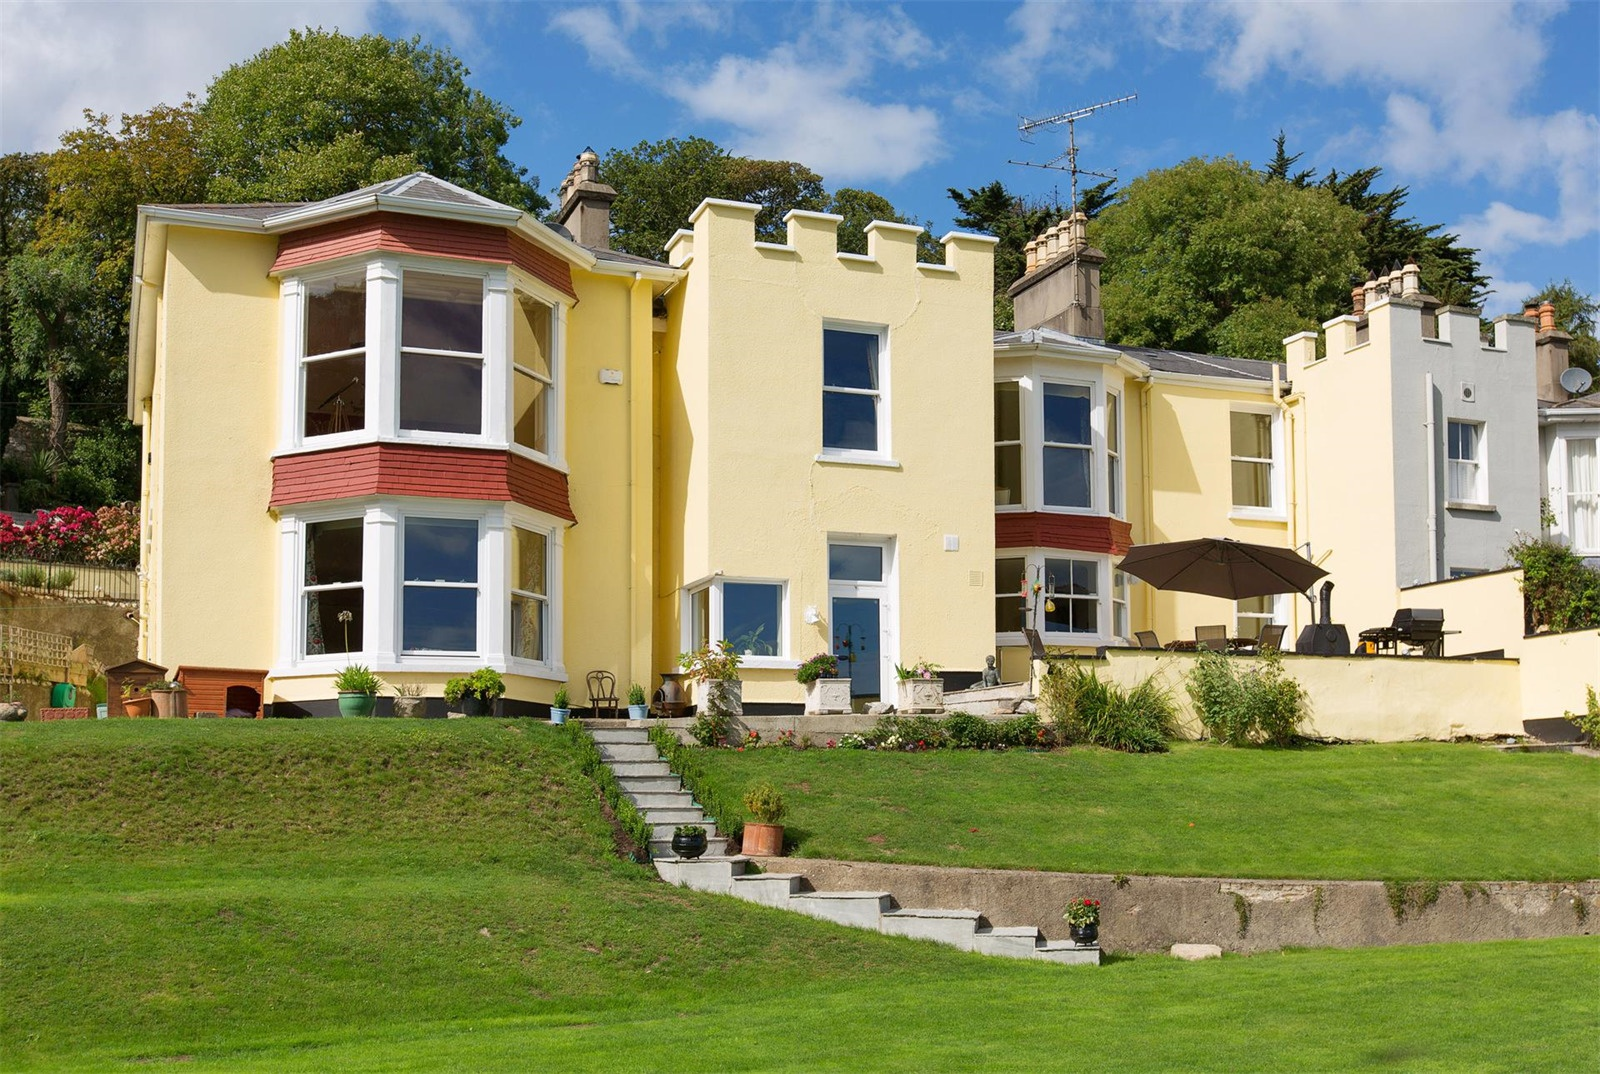 Overlooking Killiney Bay, Saintbury House was the childhood home of silver screen legend Maureen O'Sullivan.